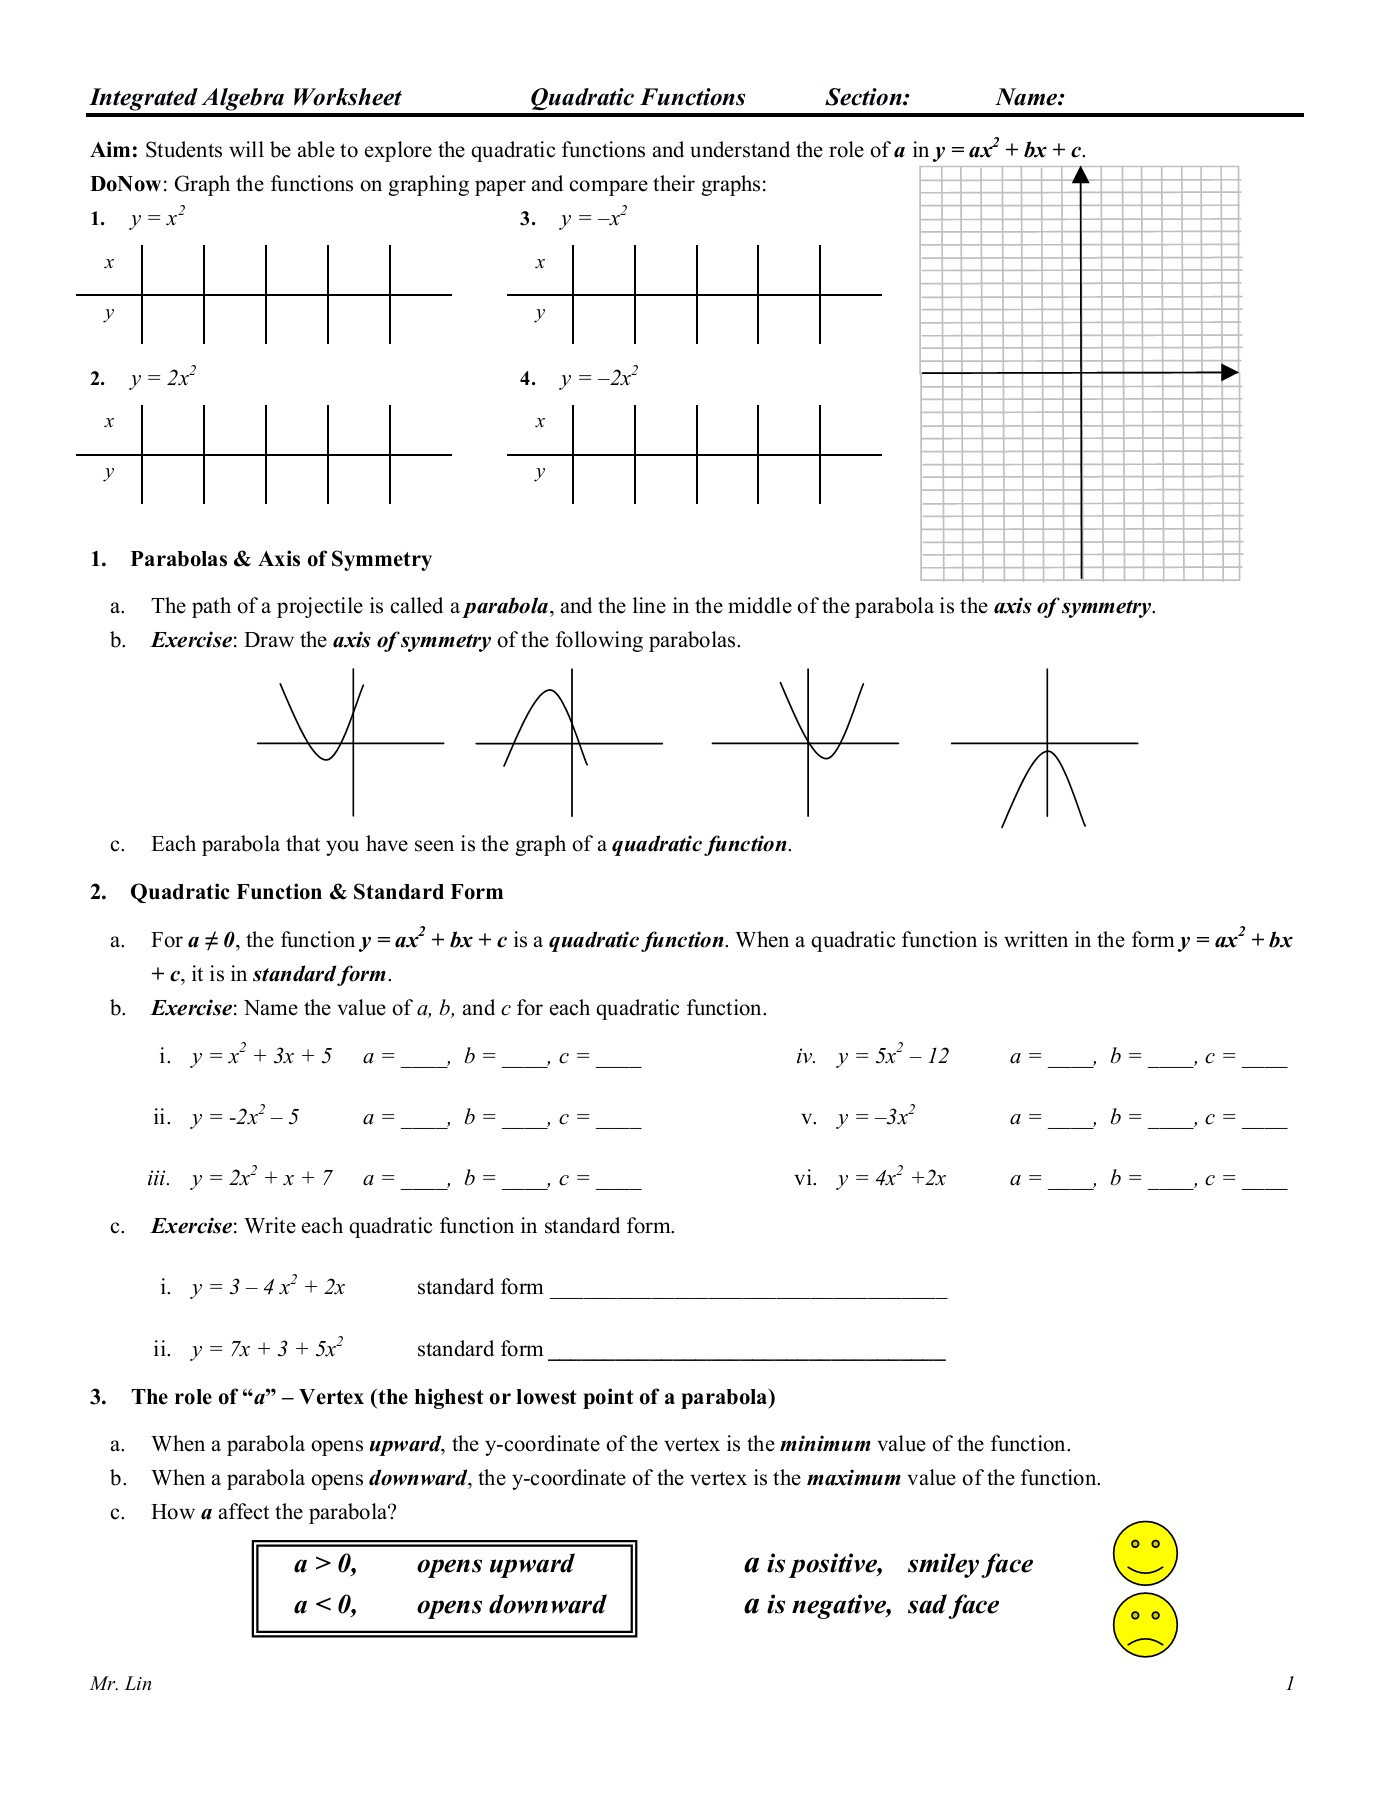 Quadratic Equation Worksheet with Answers Algebra Worksheet 09 Qudratic Functions Pages 1 5 Text